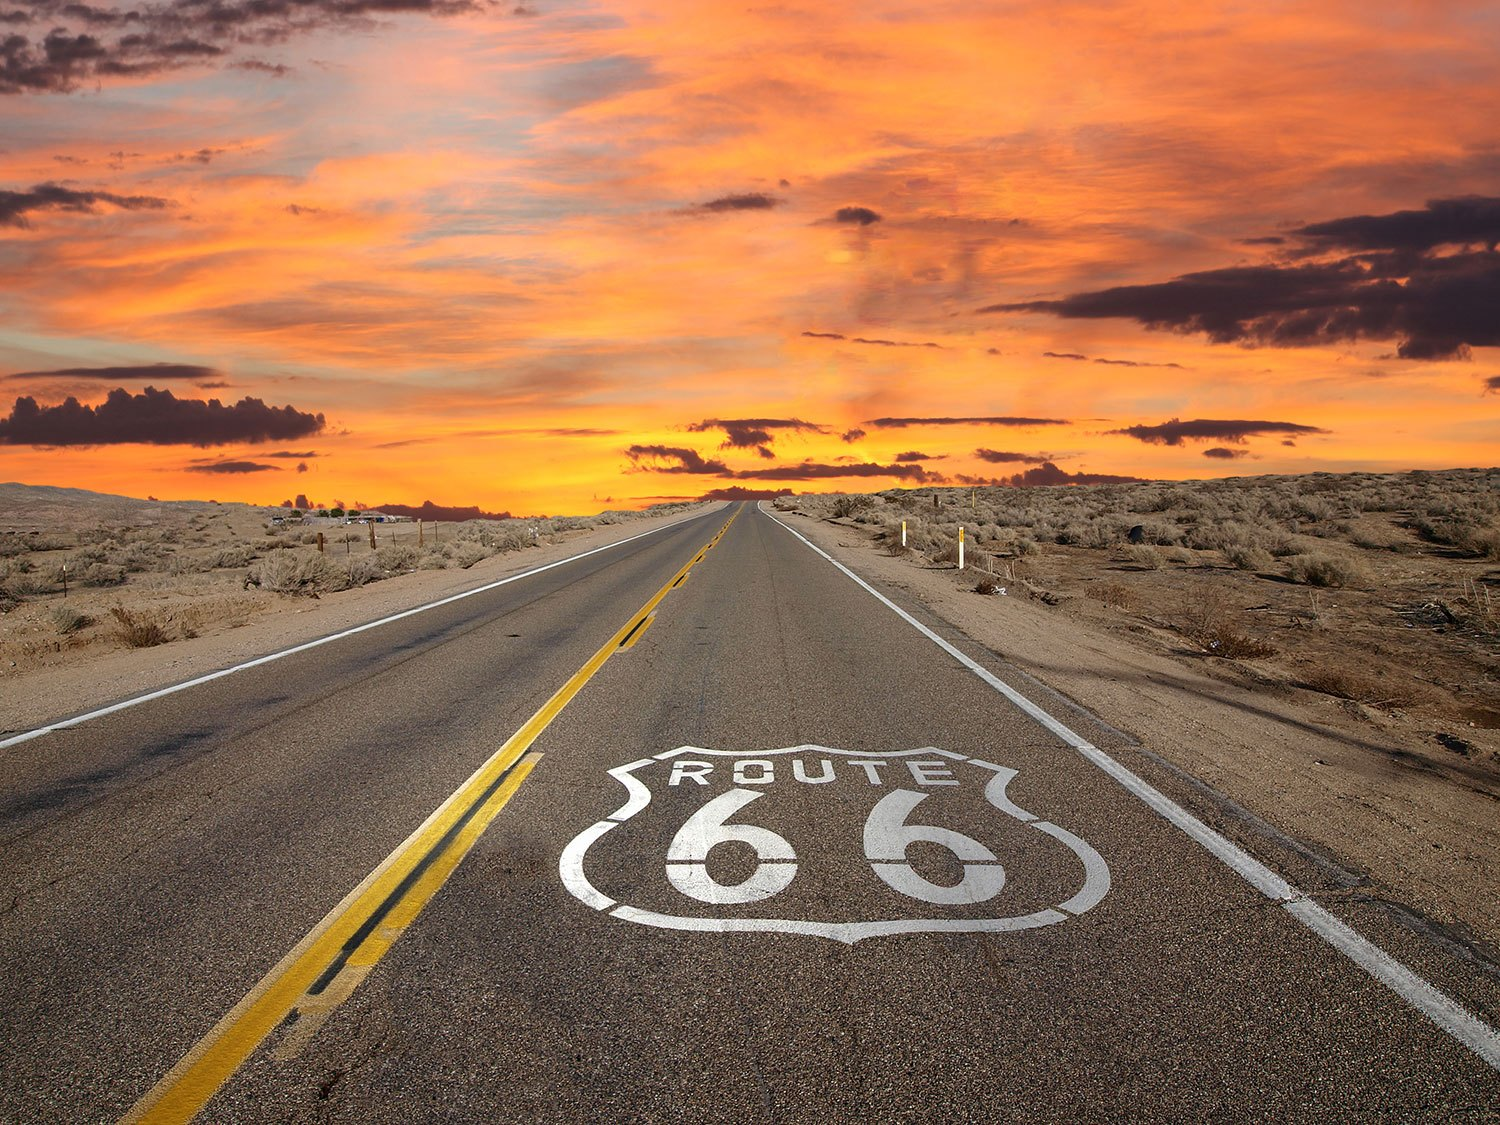 Poster xxl: Route 66